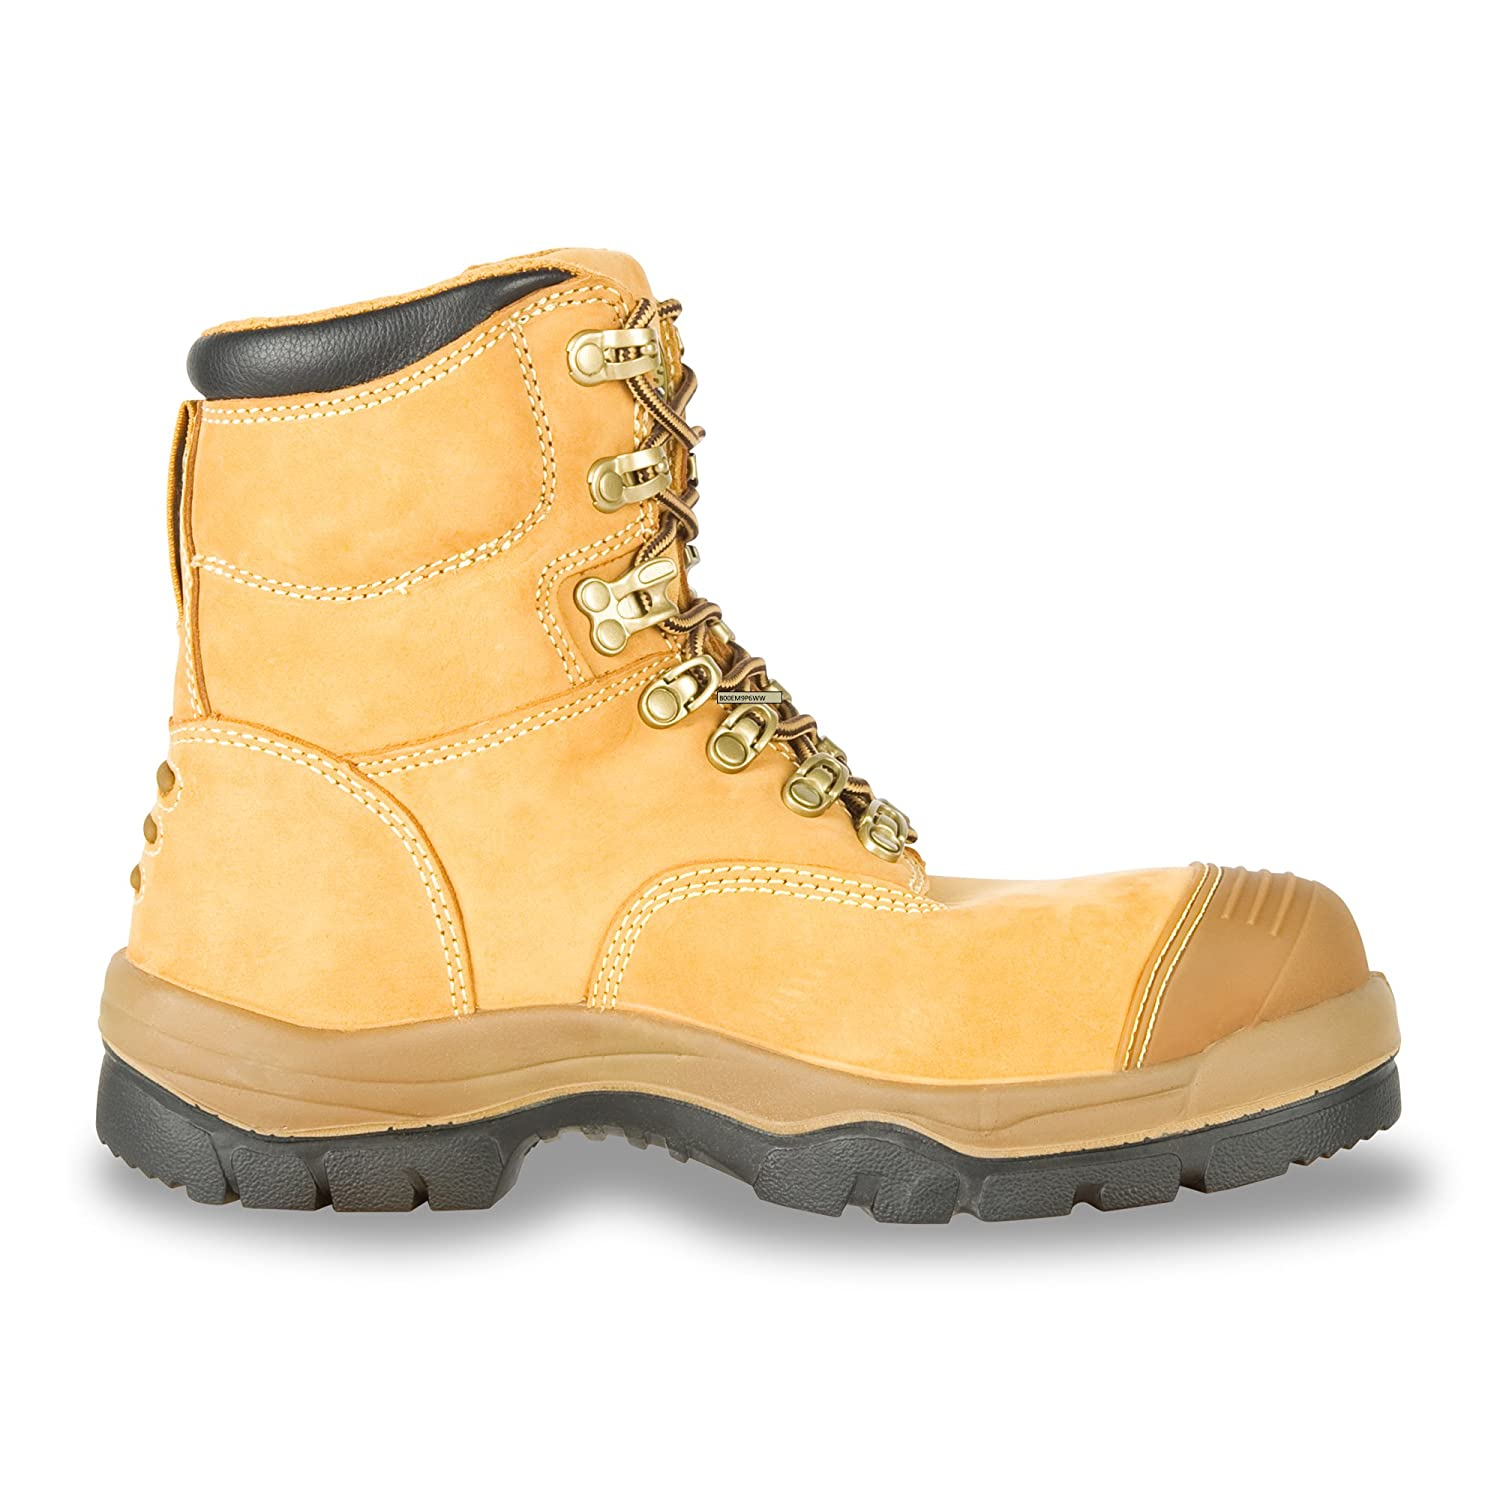 Oliver 55 Series 6 Leather Mens Steel Toe Work Boots Wheat Oliver Footwear 55232-TN-130 55232